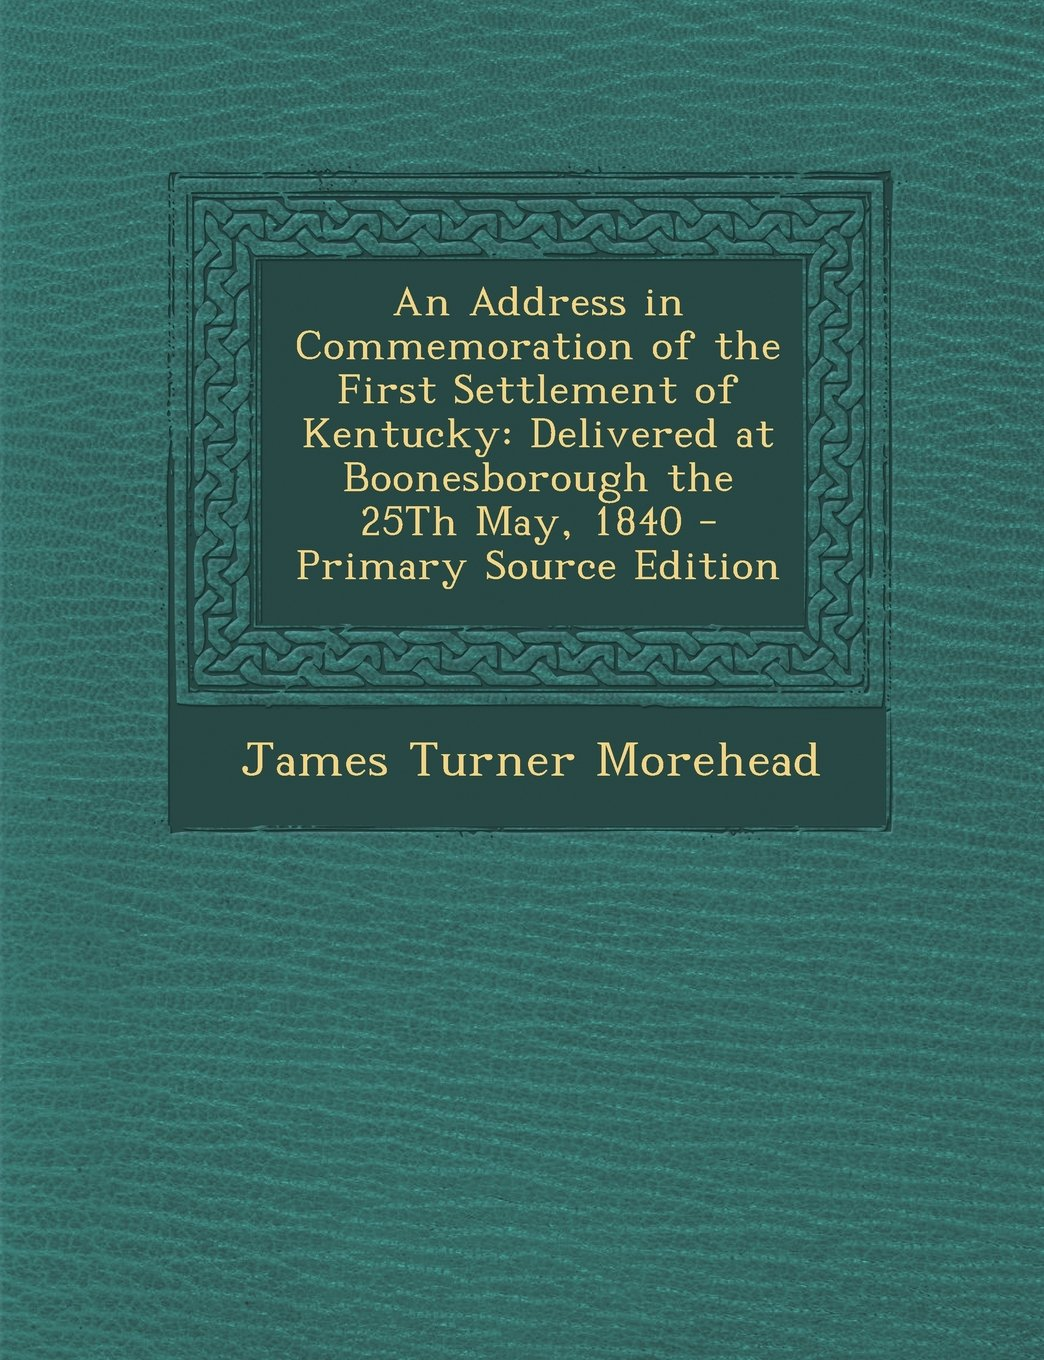 Download An Address in Commemoration of the First Settlement of Kentucky: Delivered at Boonesborough the 25Th May, 1840 - Primary Source Edition PDF